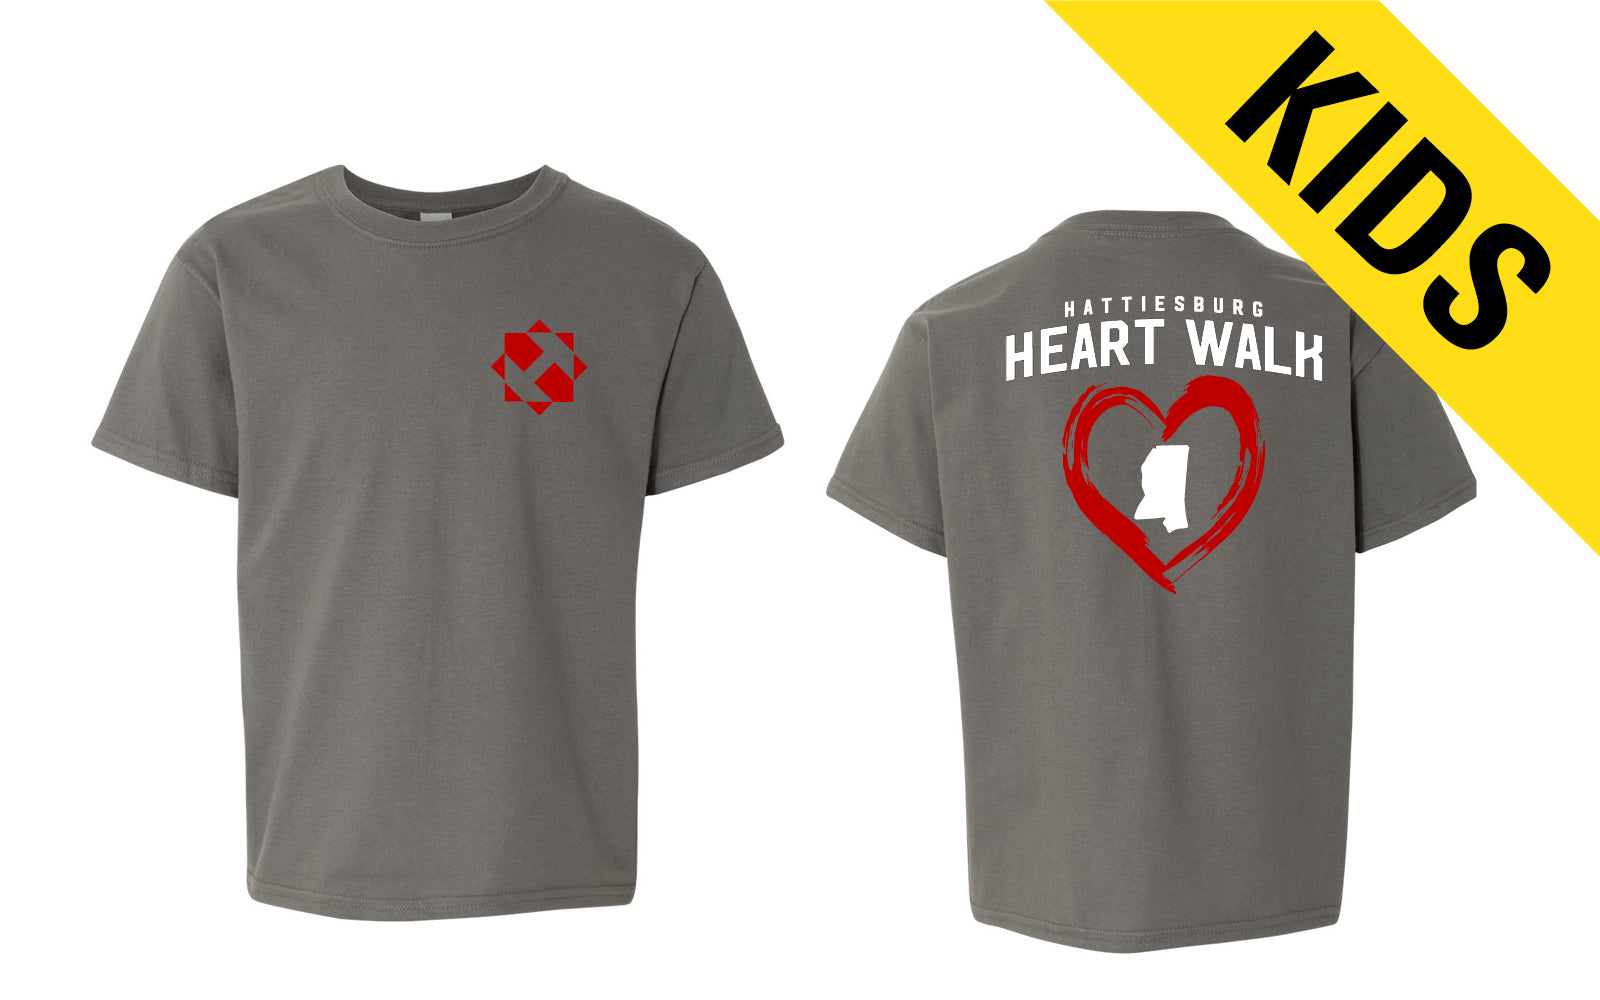 Hattiesburg Heart Walk Youth Tee